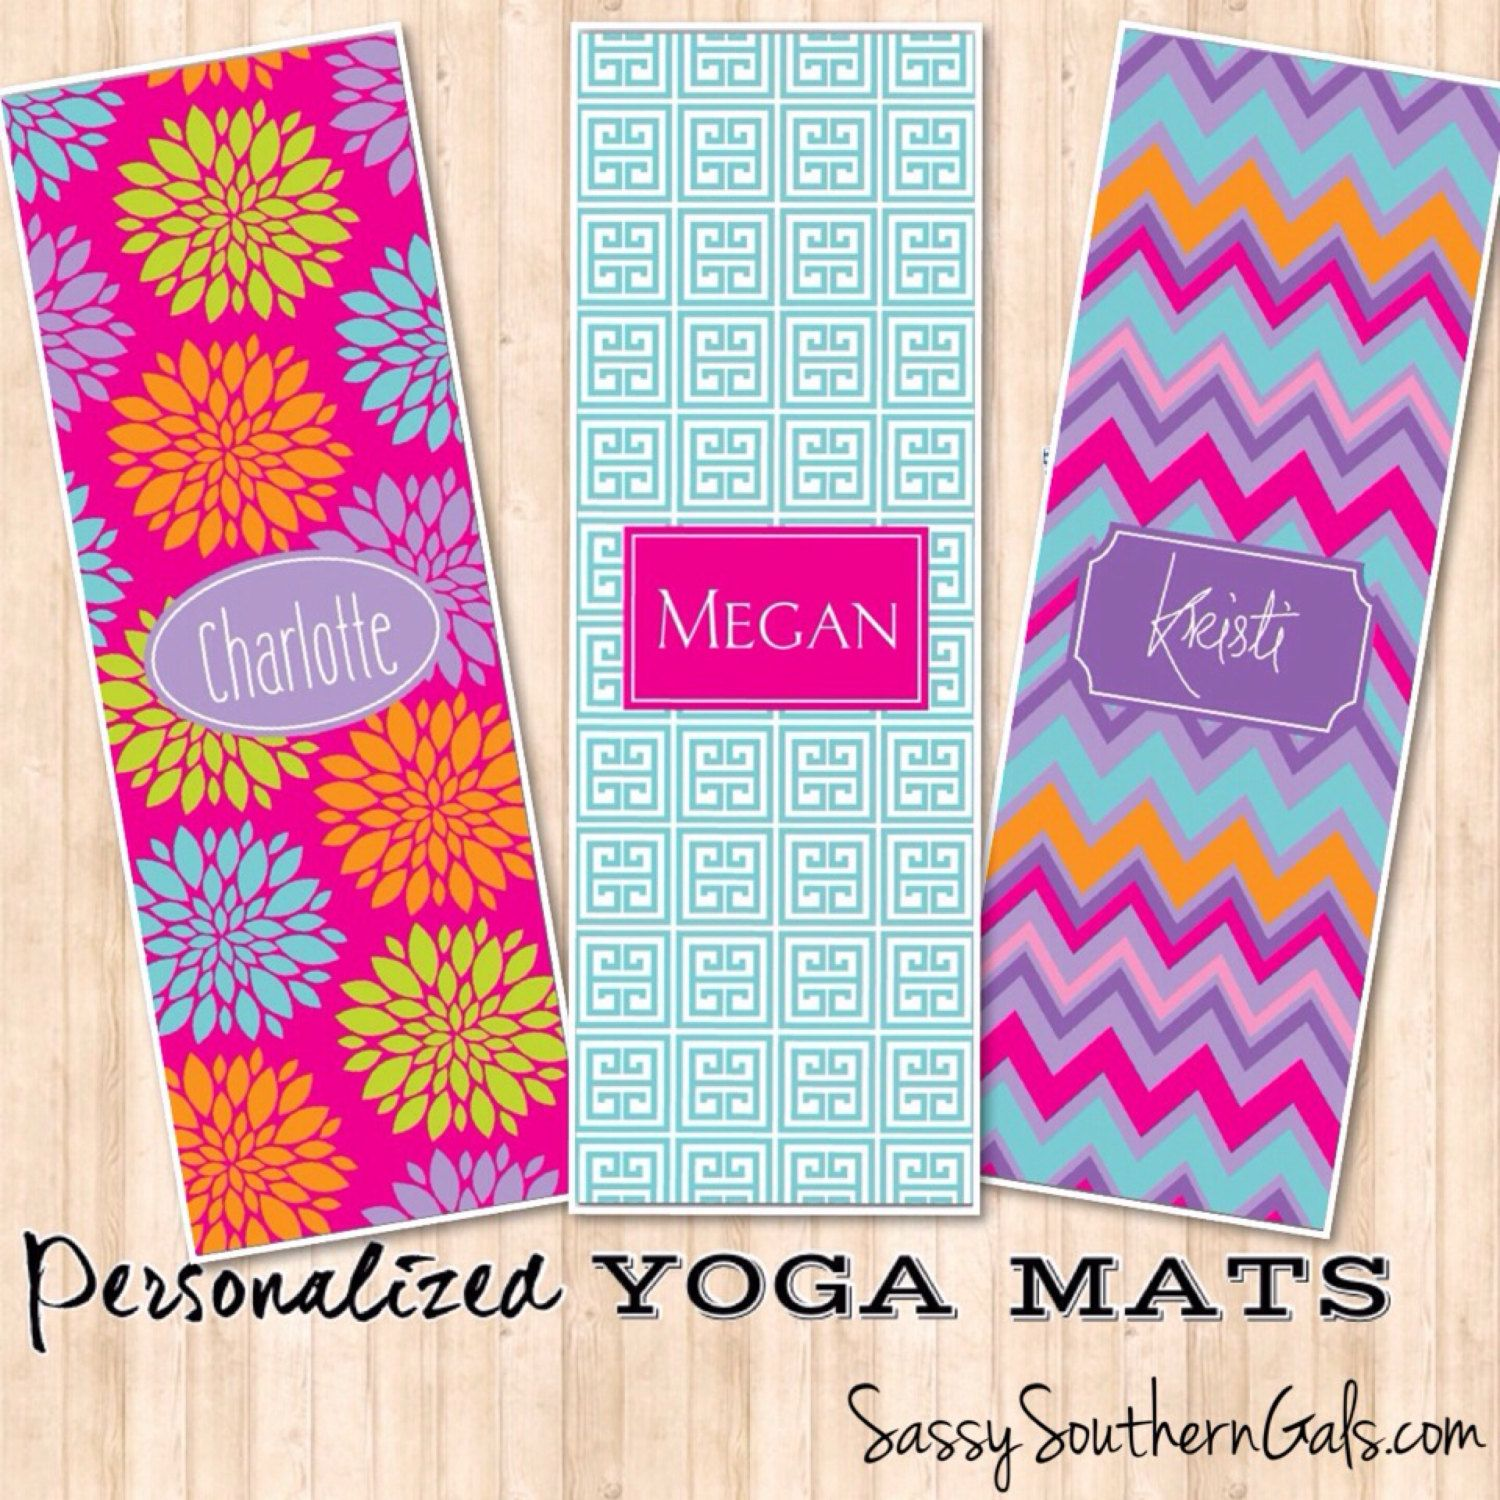 waterbottle camelbak s yoga time marleylilly t monogrammed forget mat pin now or for your shop mats it at don